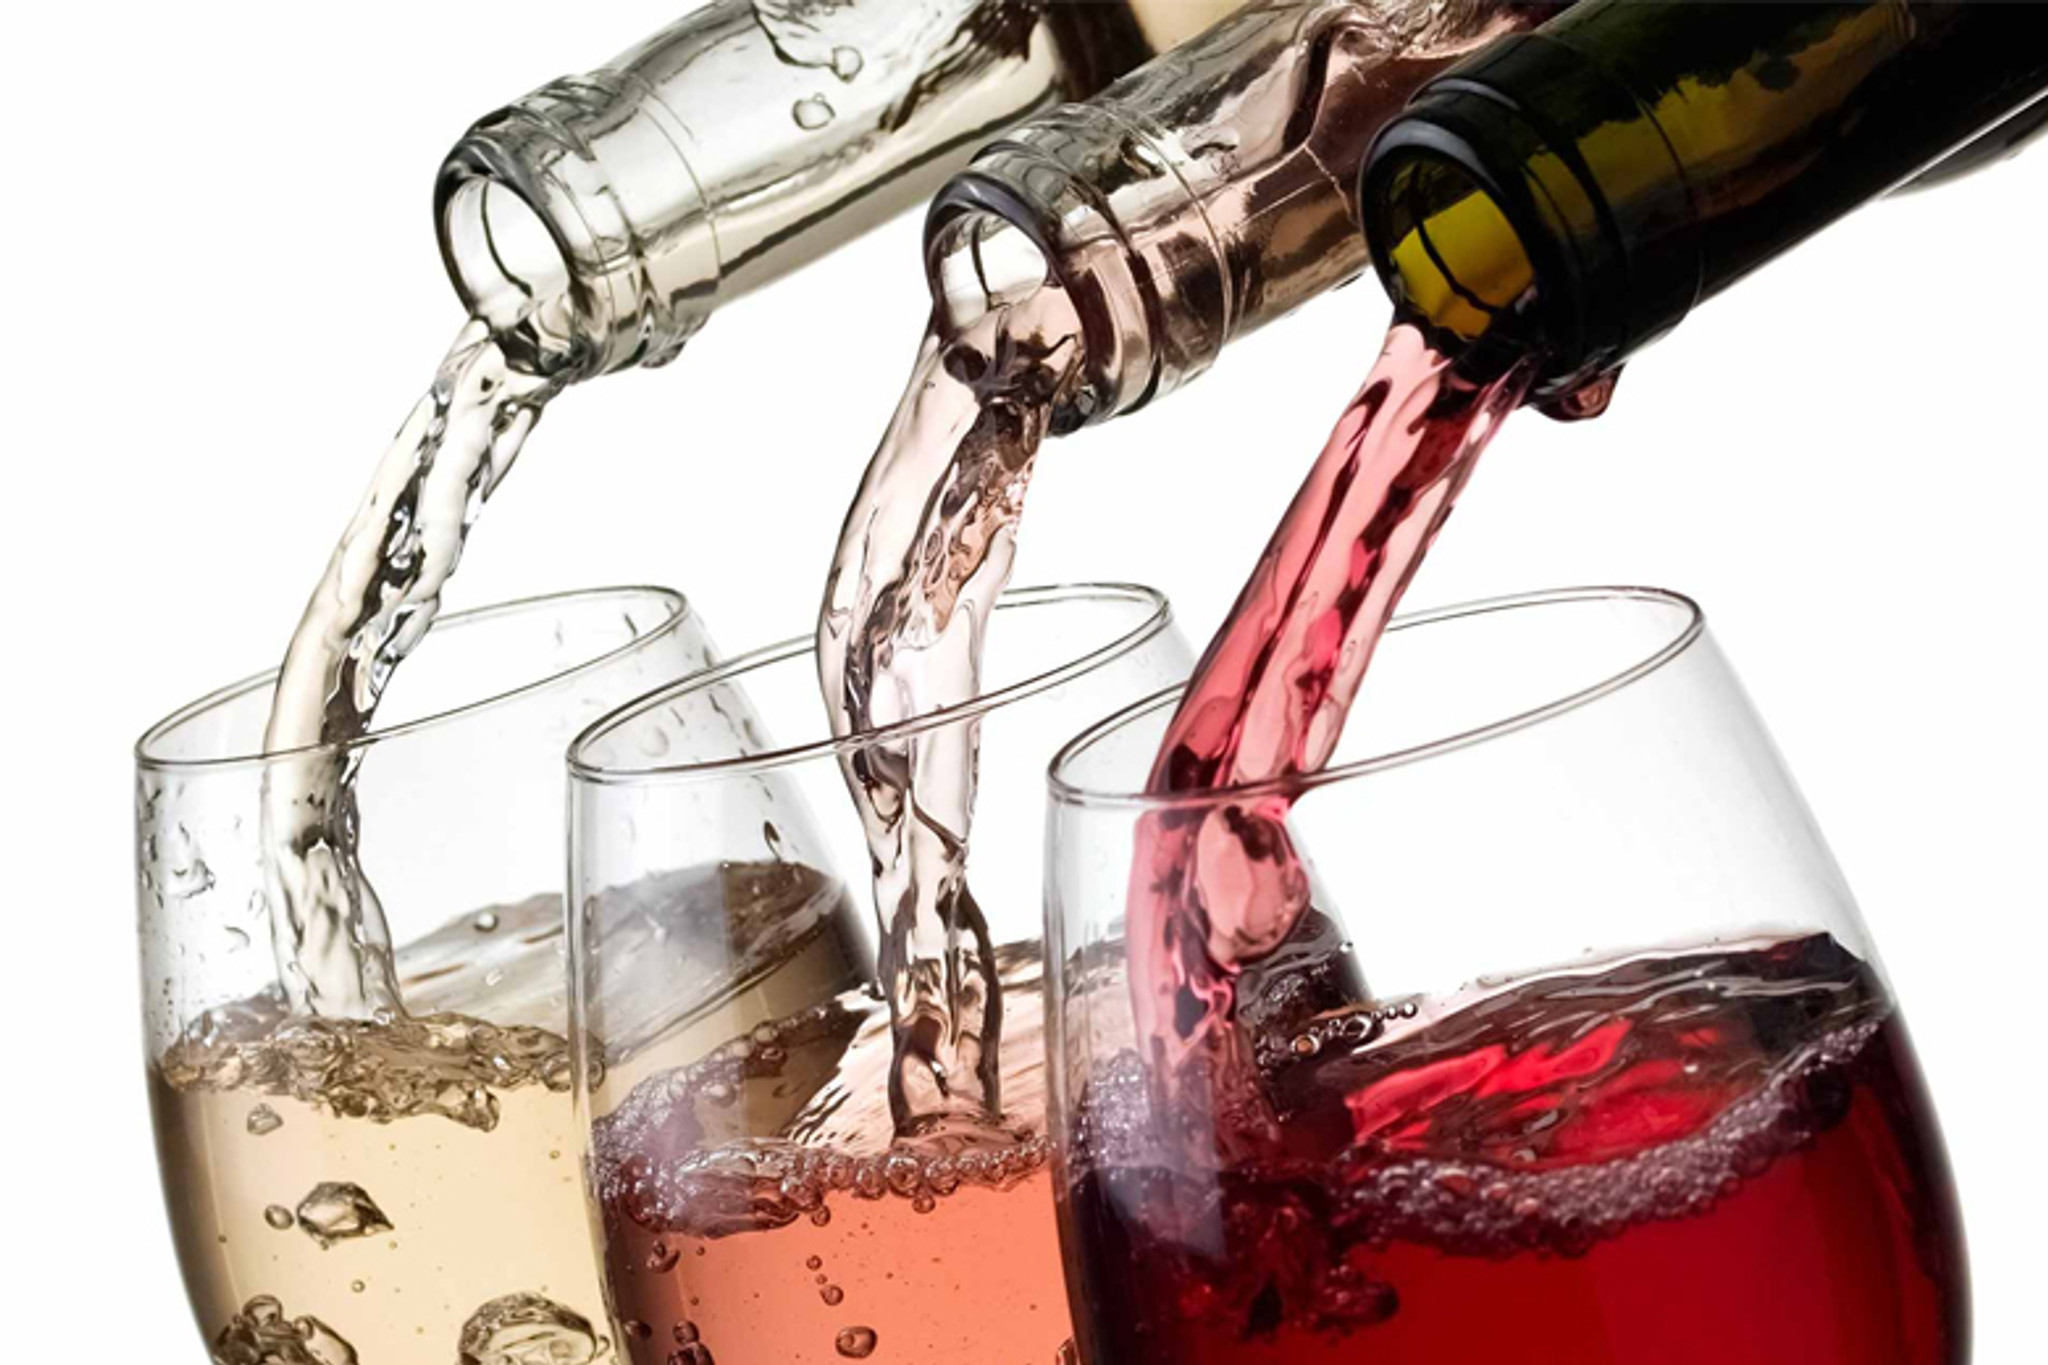 Ask the Health Coach: Can I drink alcohol while taking weight-loss pills or detoxification supplements?